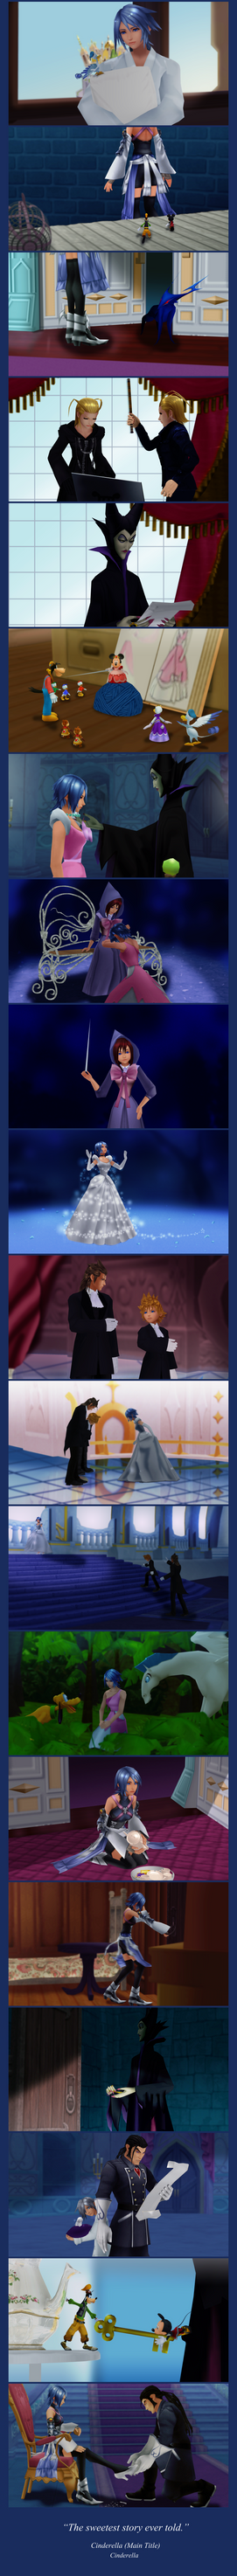 DS-KH - Cinderella [Main Title] by JointOperation